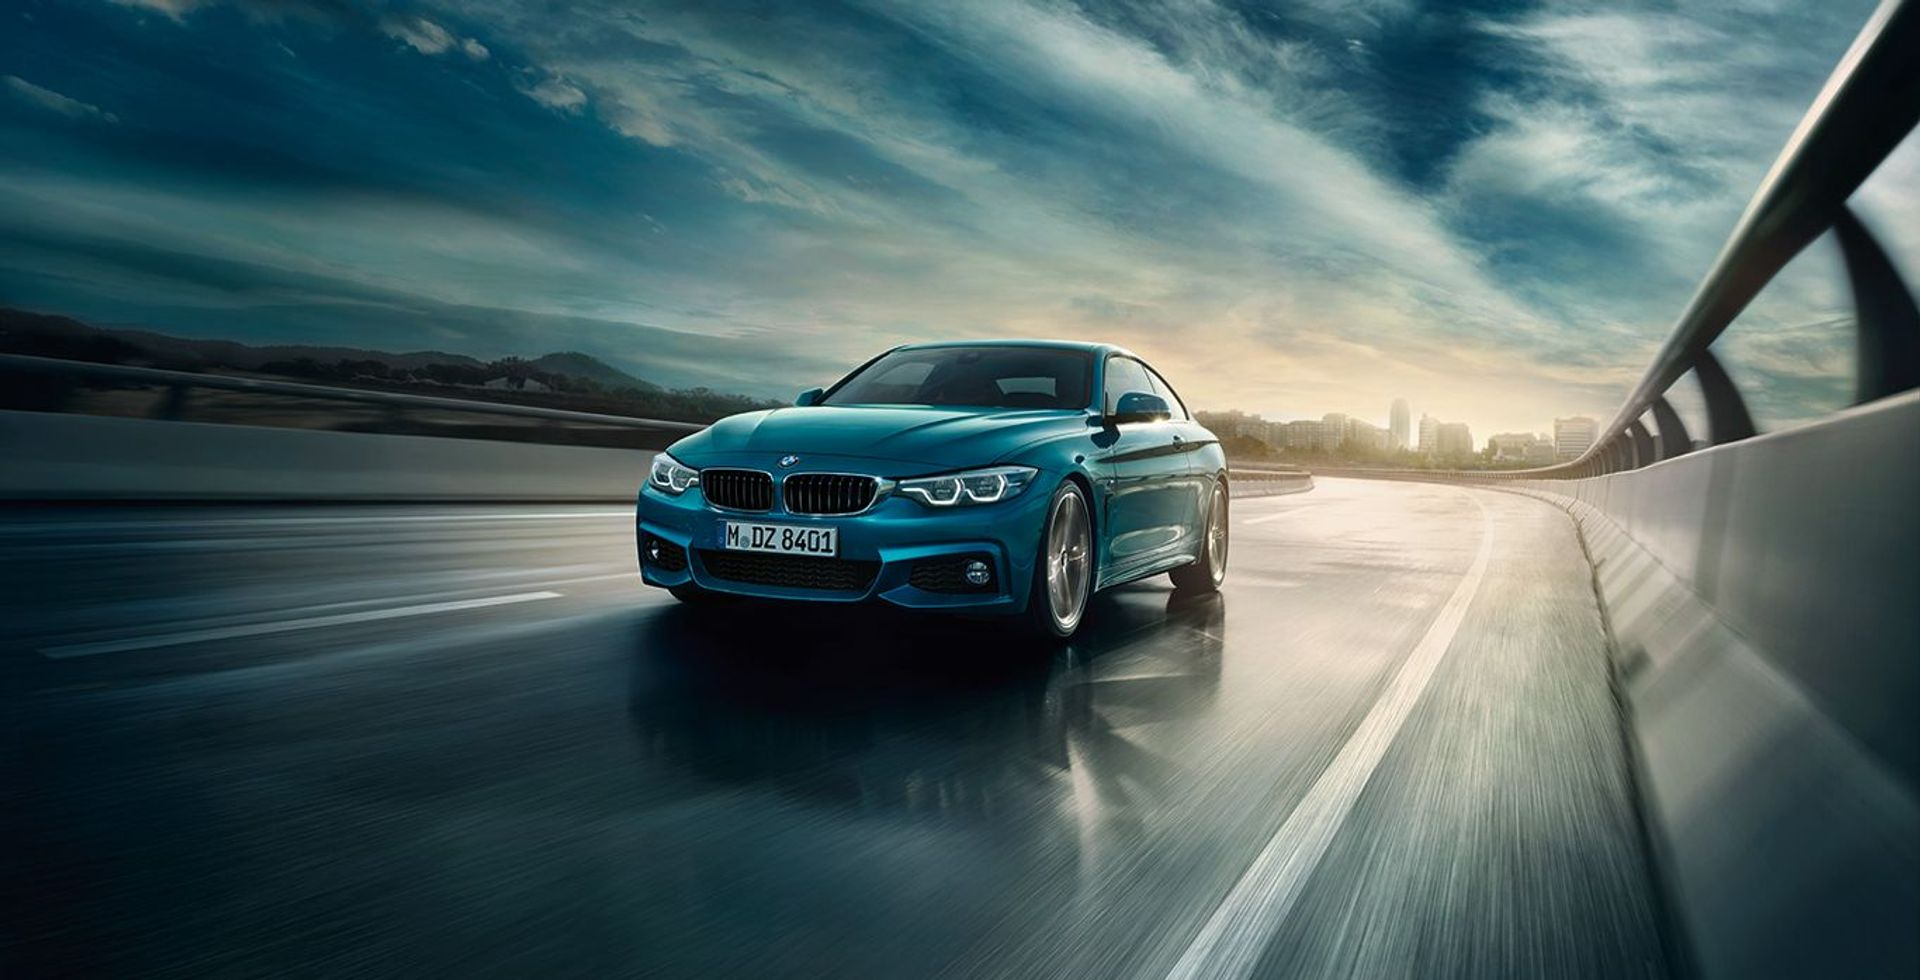 BMW 4 Series 430d image